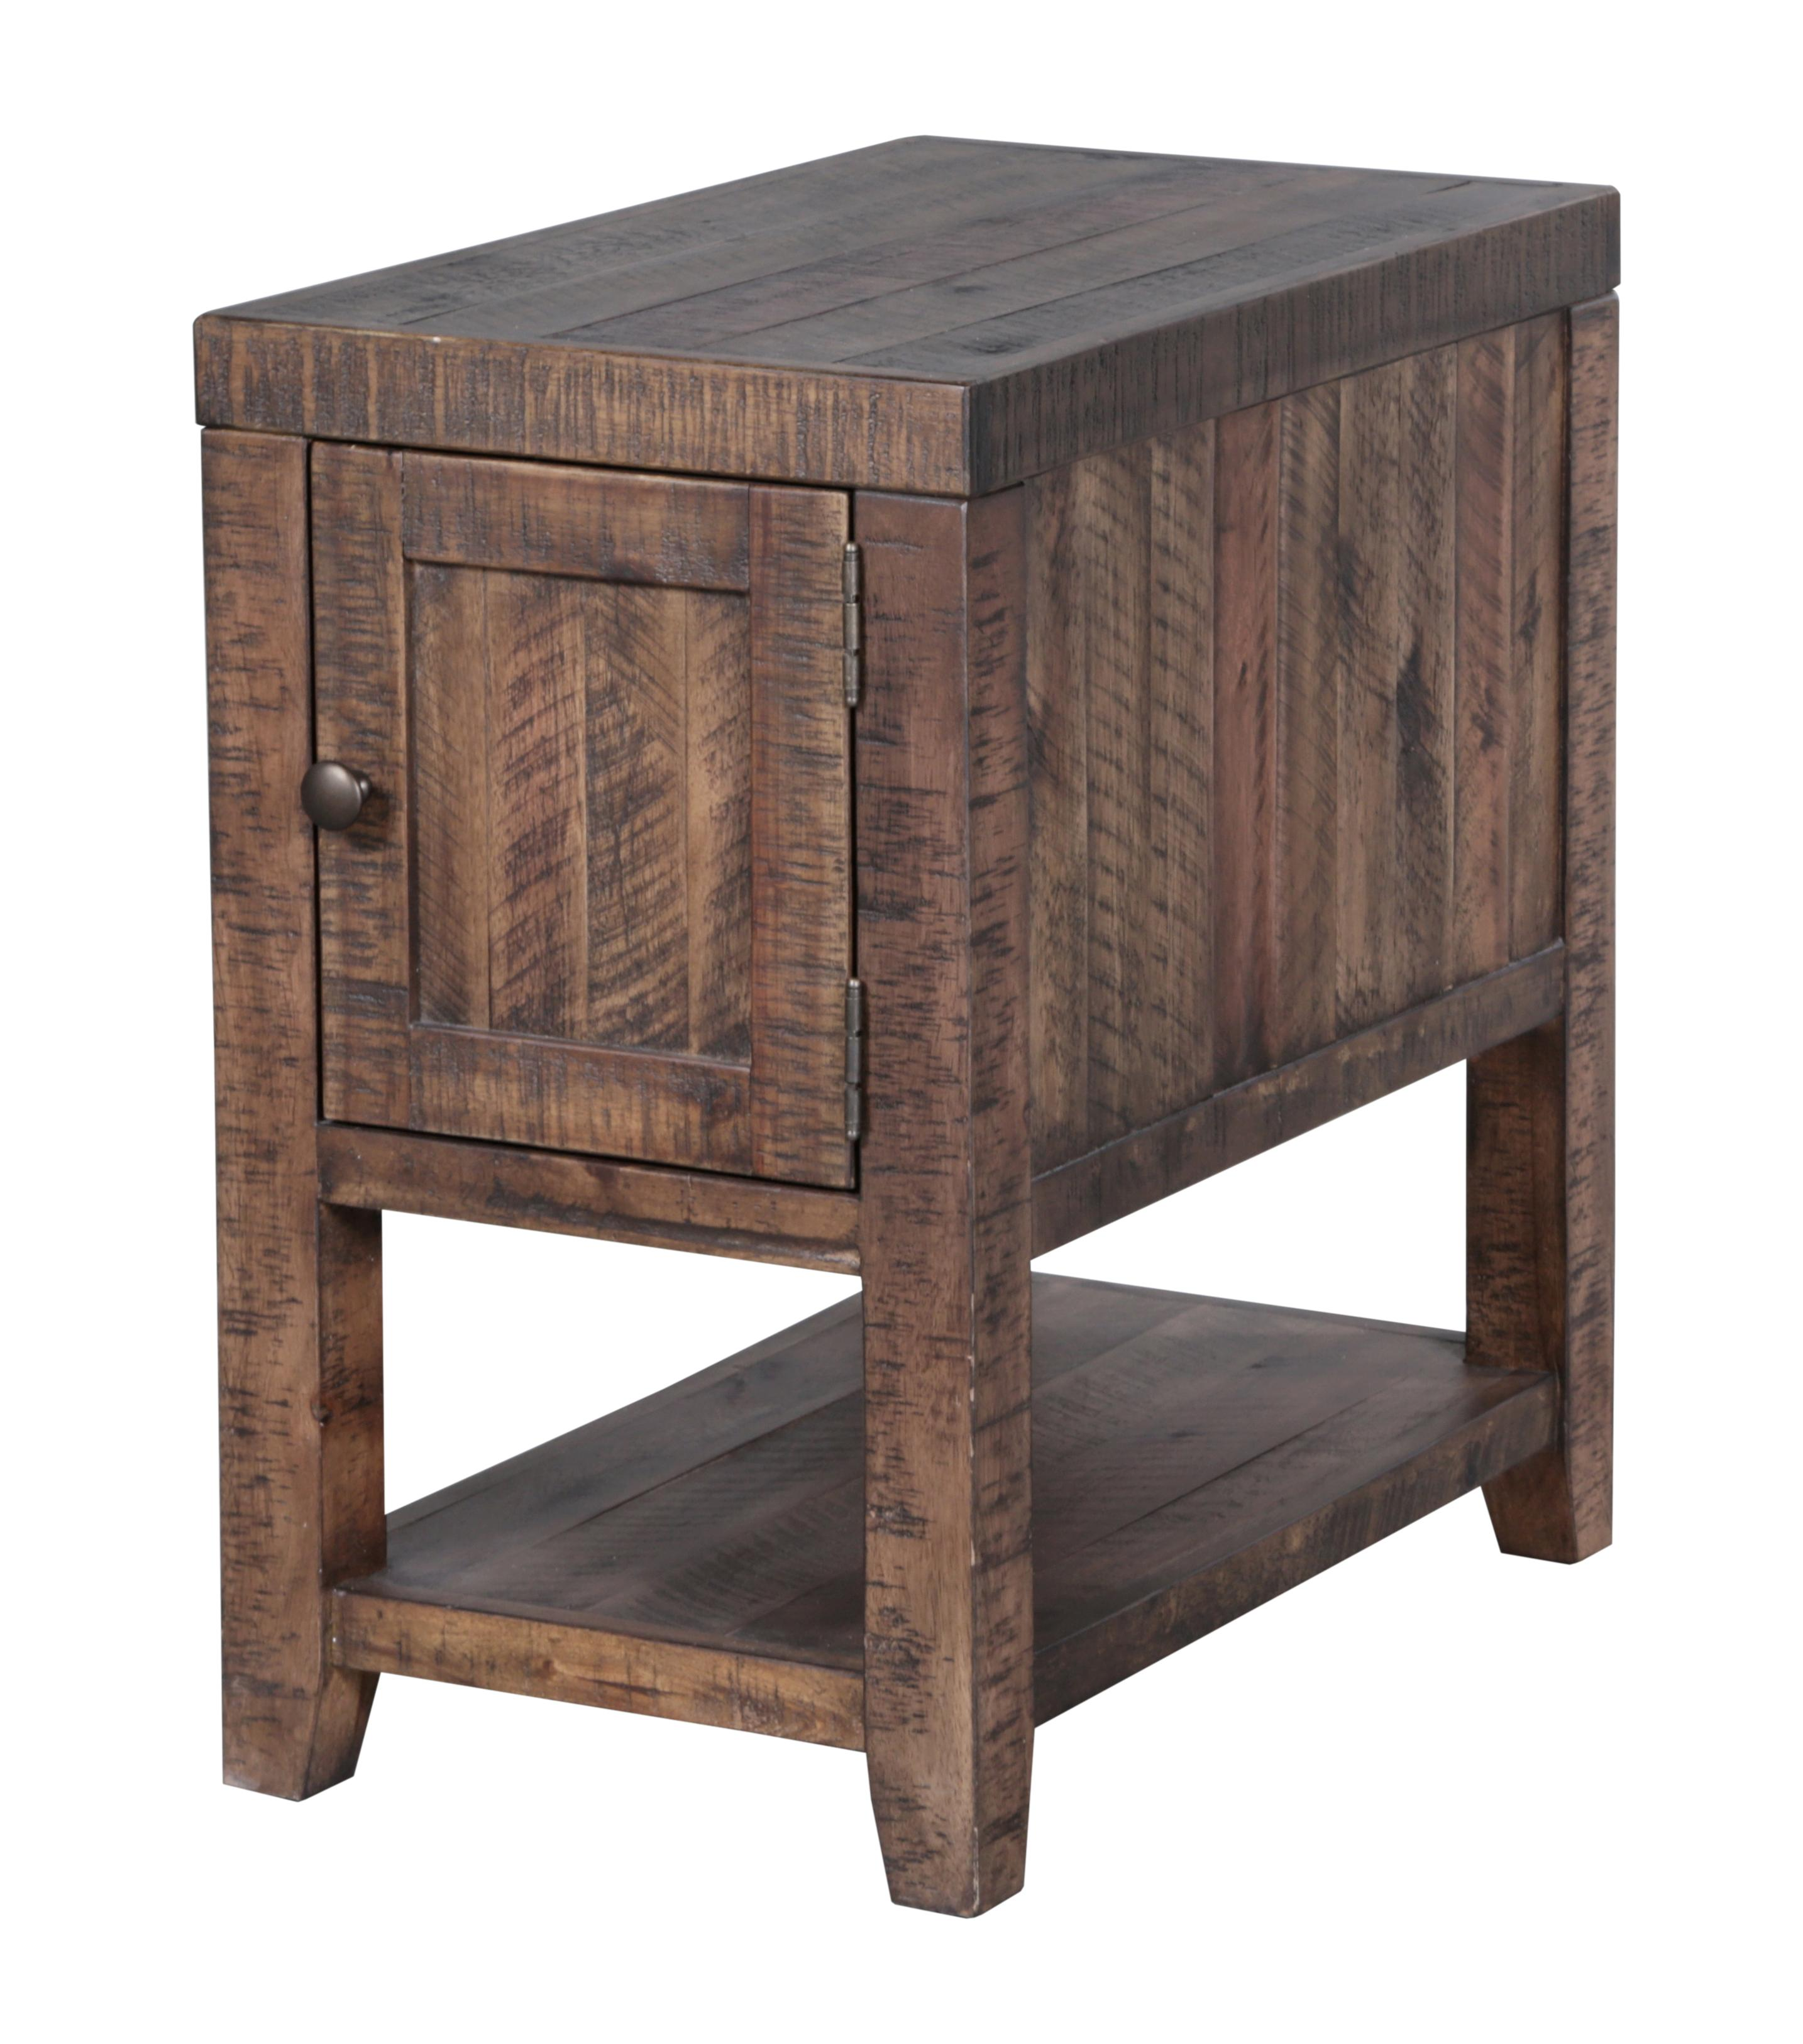 Rustic Rectangular Chairside Table with One Door and One Shelf